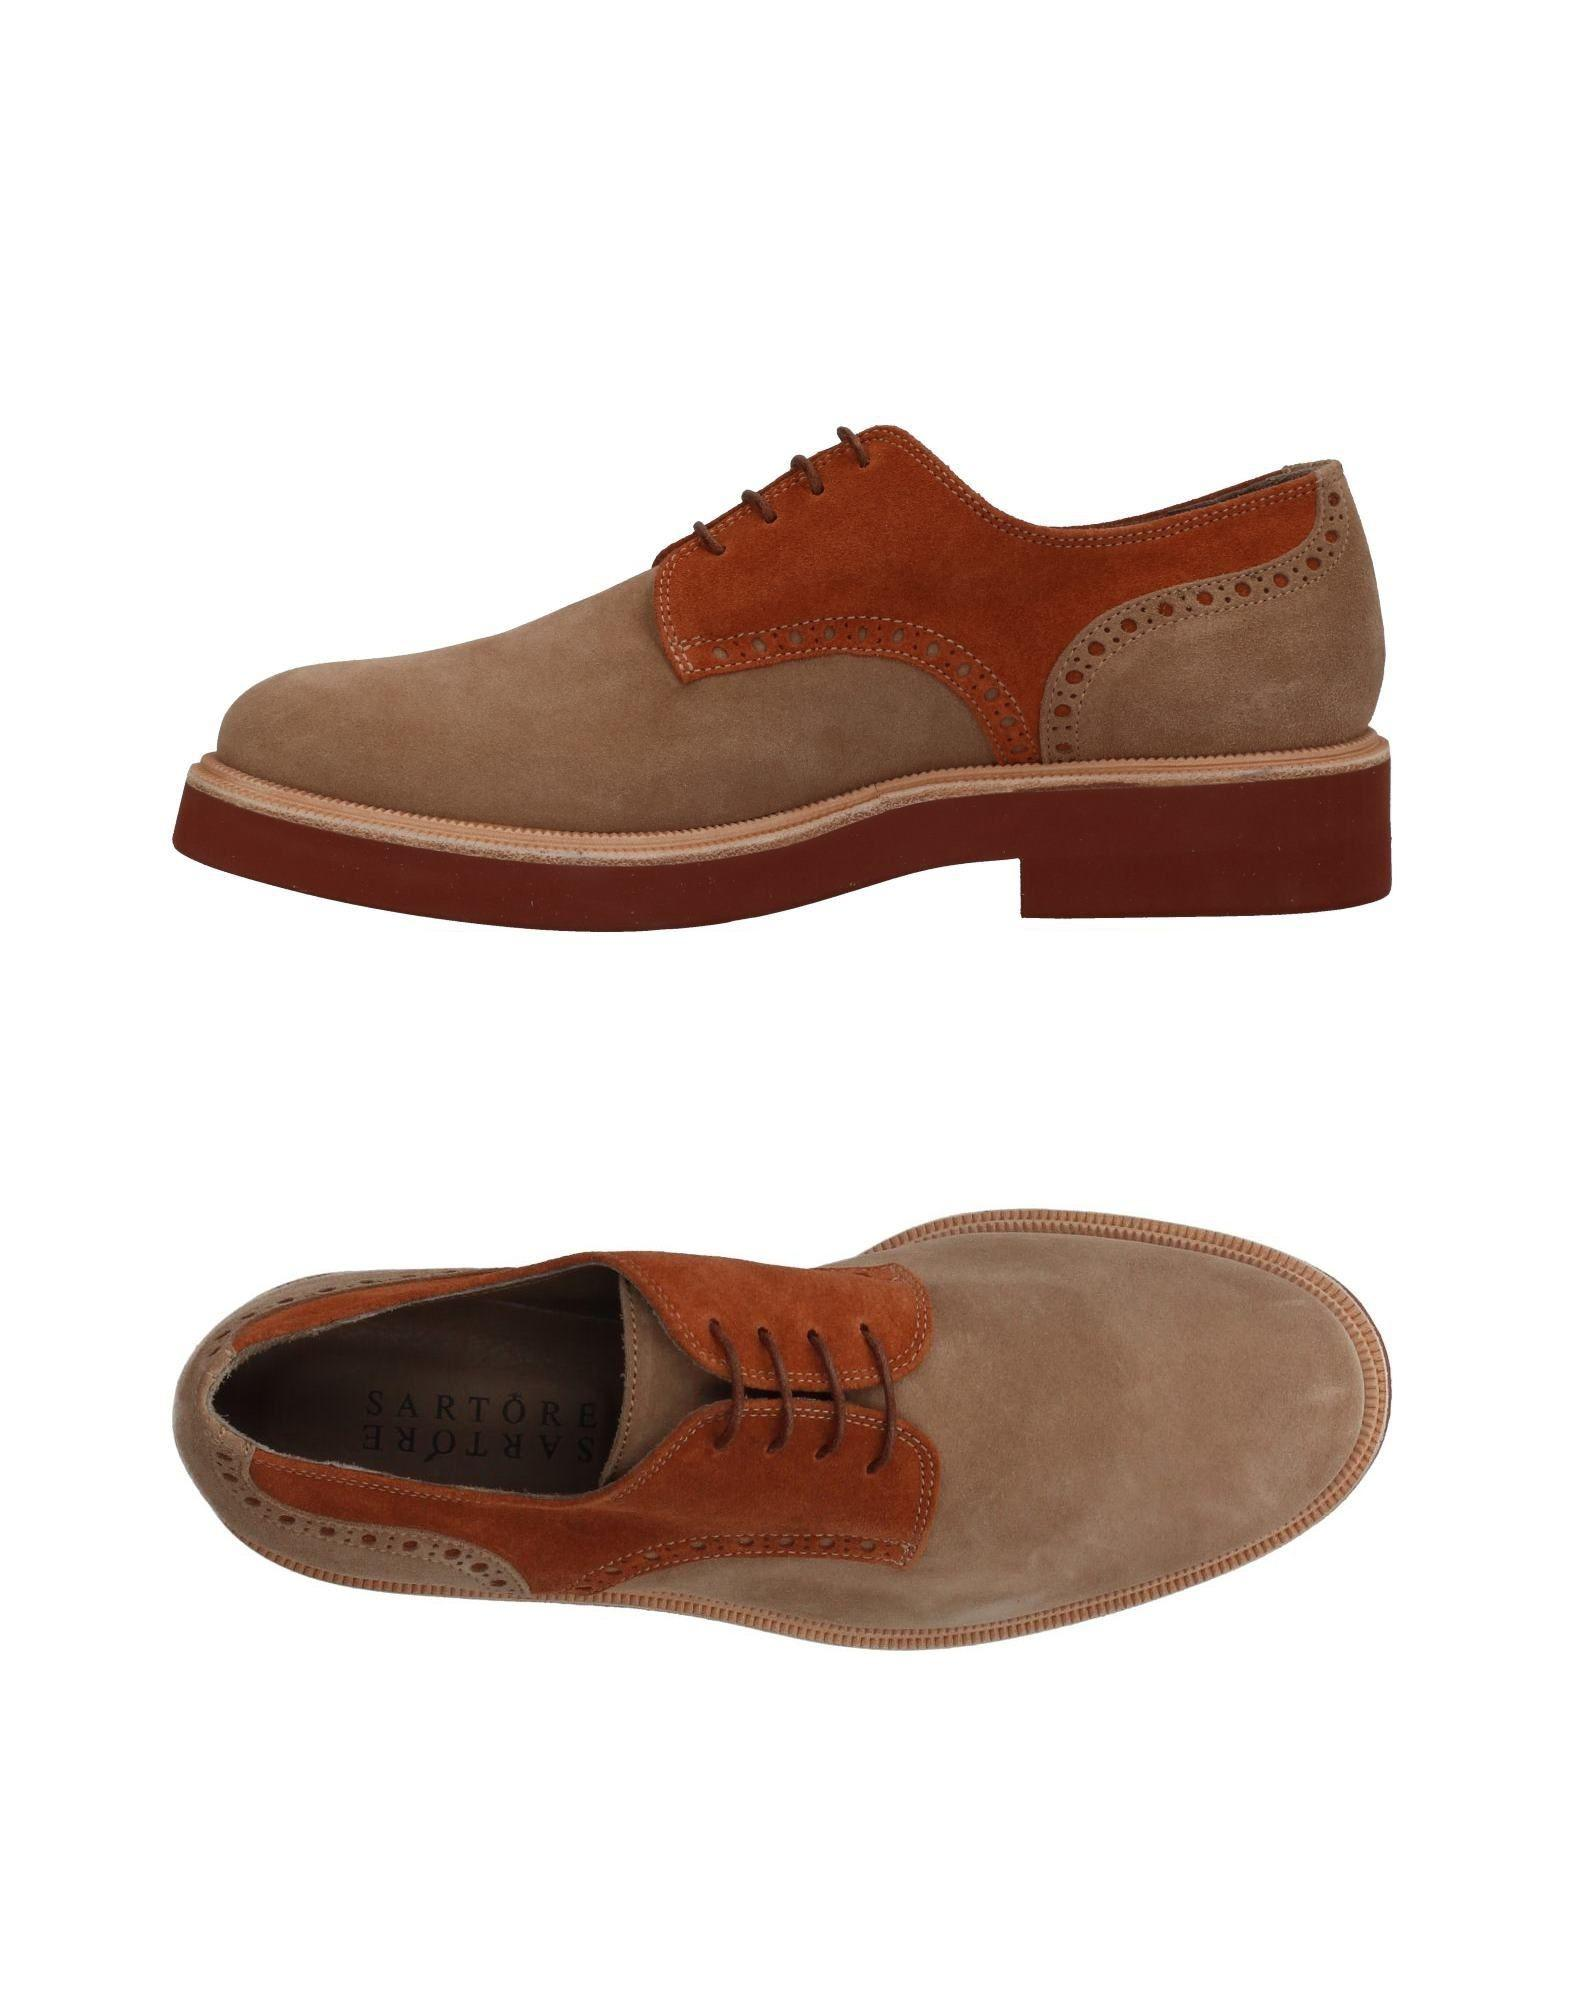 FOOTWEAR - Lace-up shoes Sartore A1osDEcL